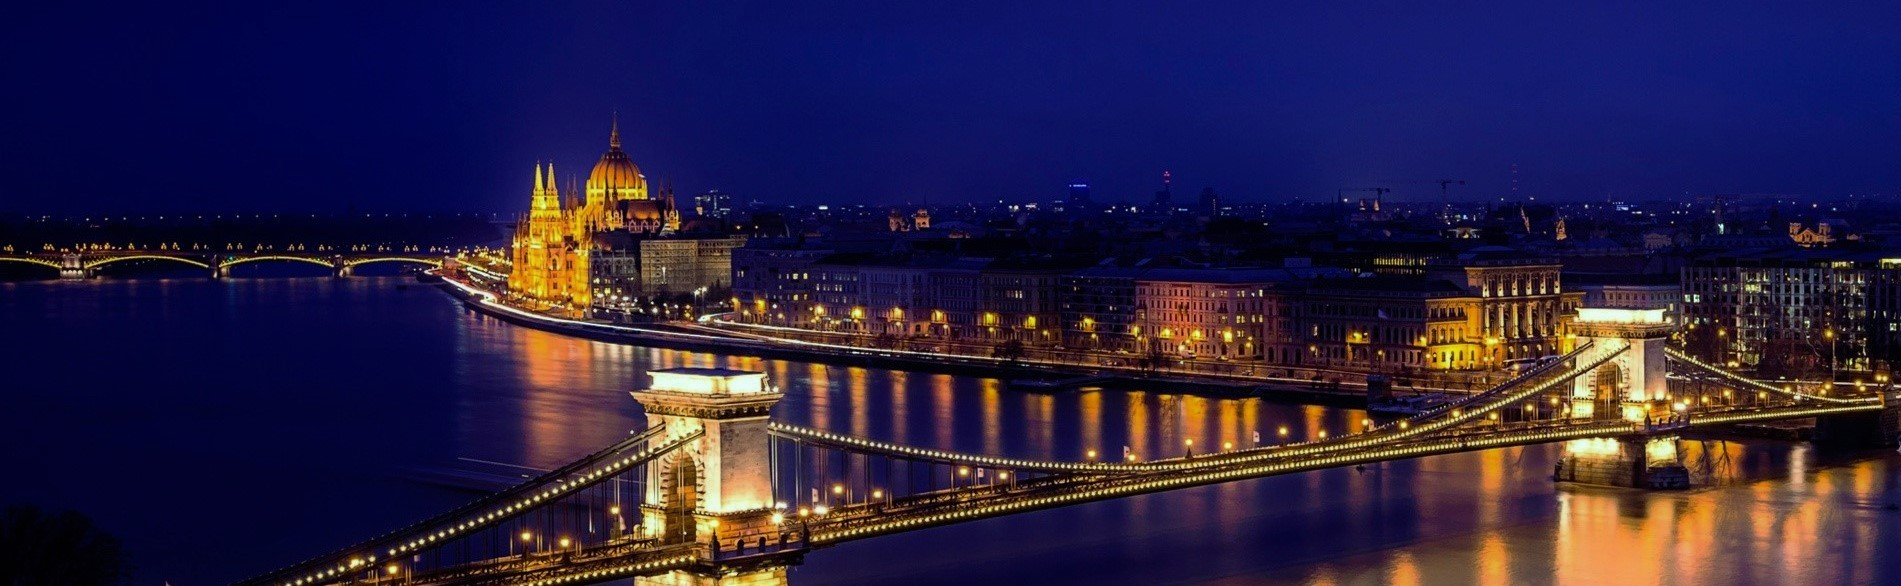 incentive events budapest vip group travel luxury